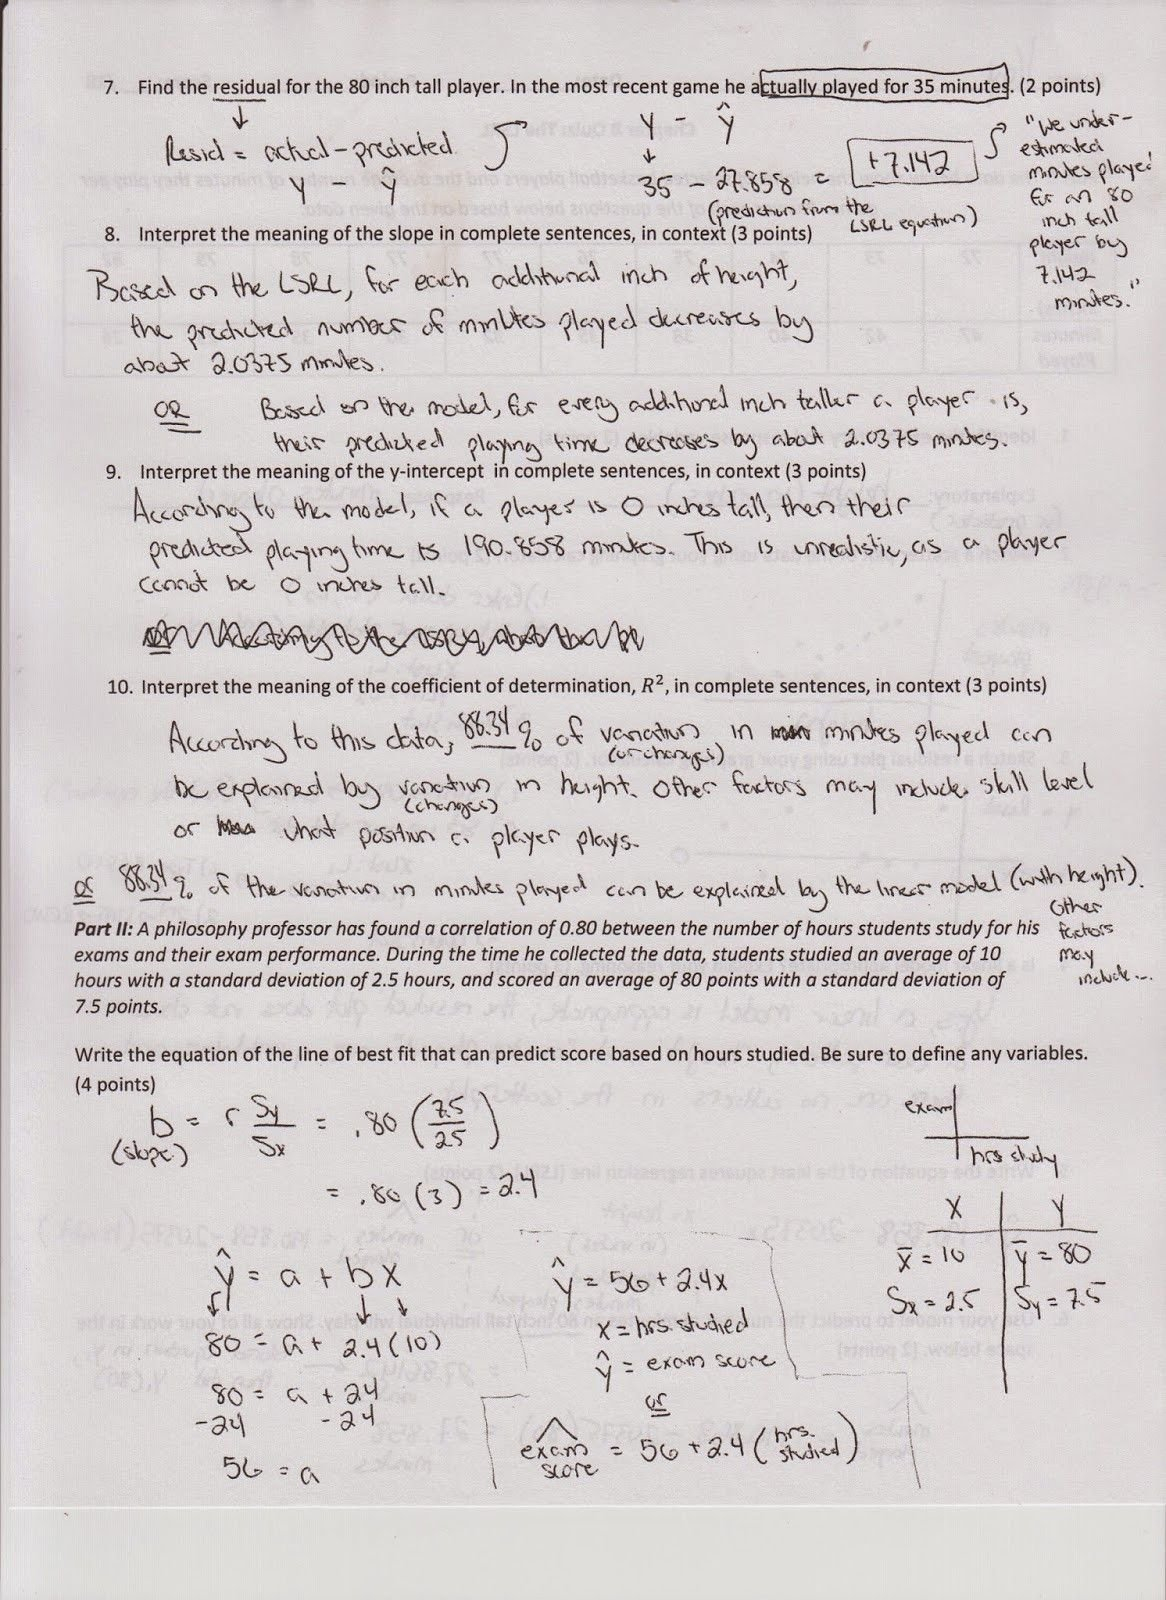 Standard Deviation Worksheet With Answers Pdf  Briefencounters With Regard To Standard Deviation Worksheet With Answers Pdf